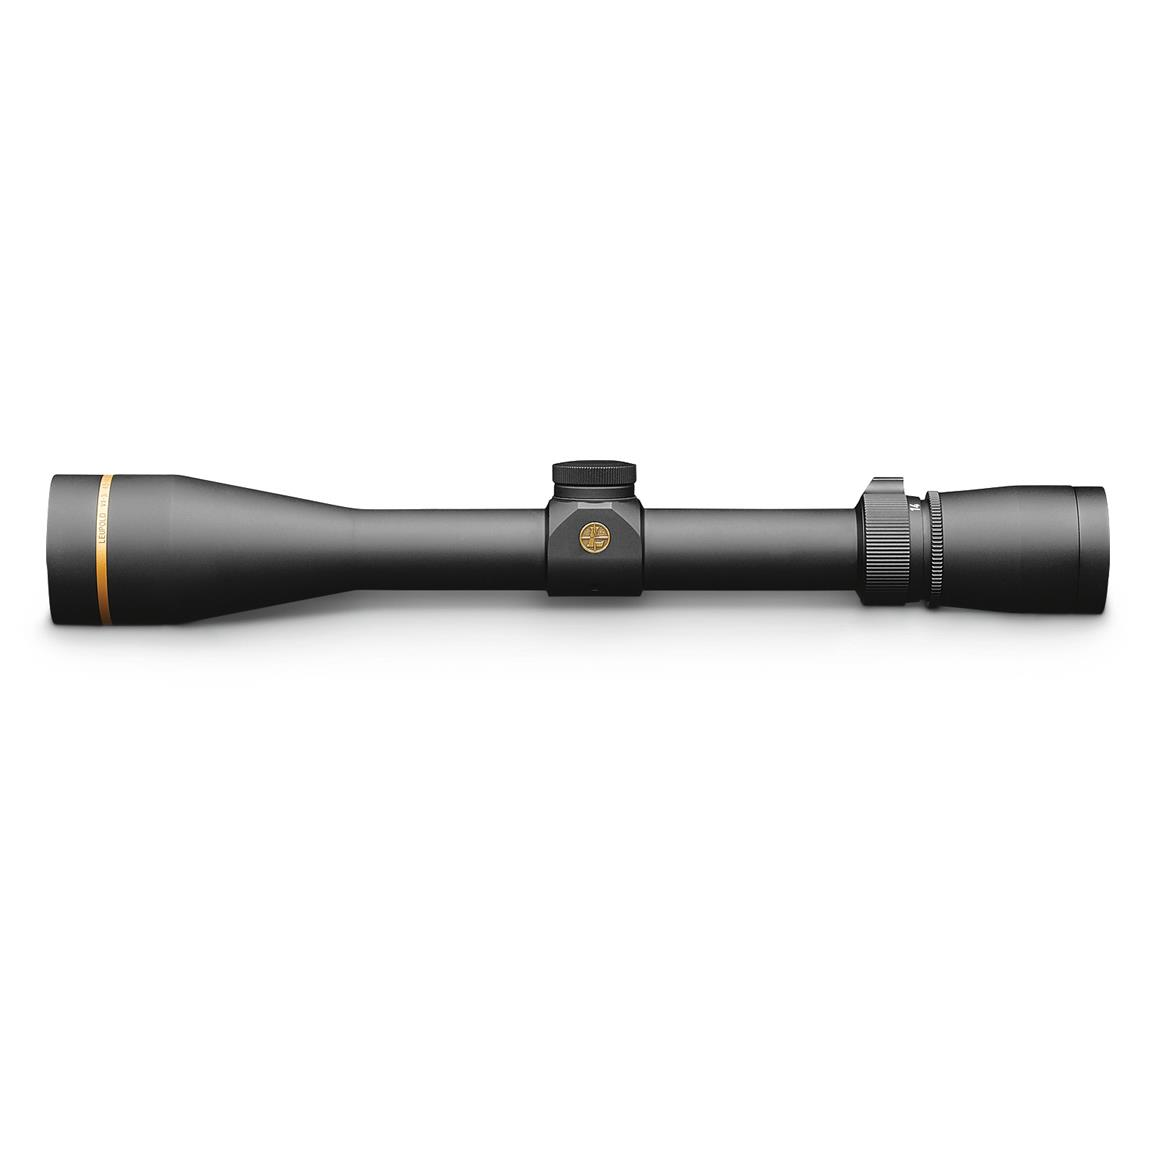 "Leupold VX-3i 4.5-14x40mm Rifle Scope, 1"" Tube, Duplex Reticle"